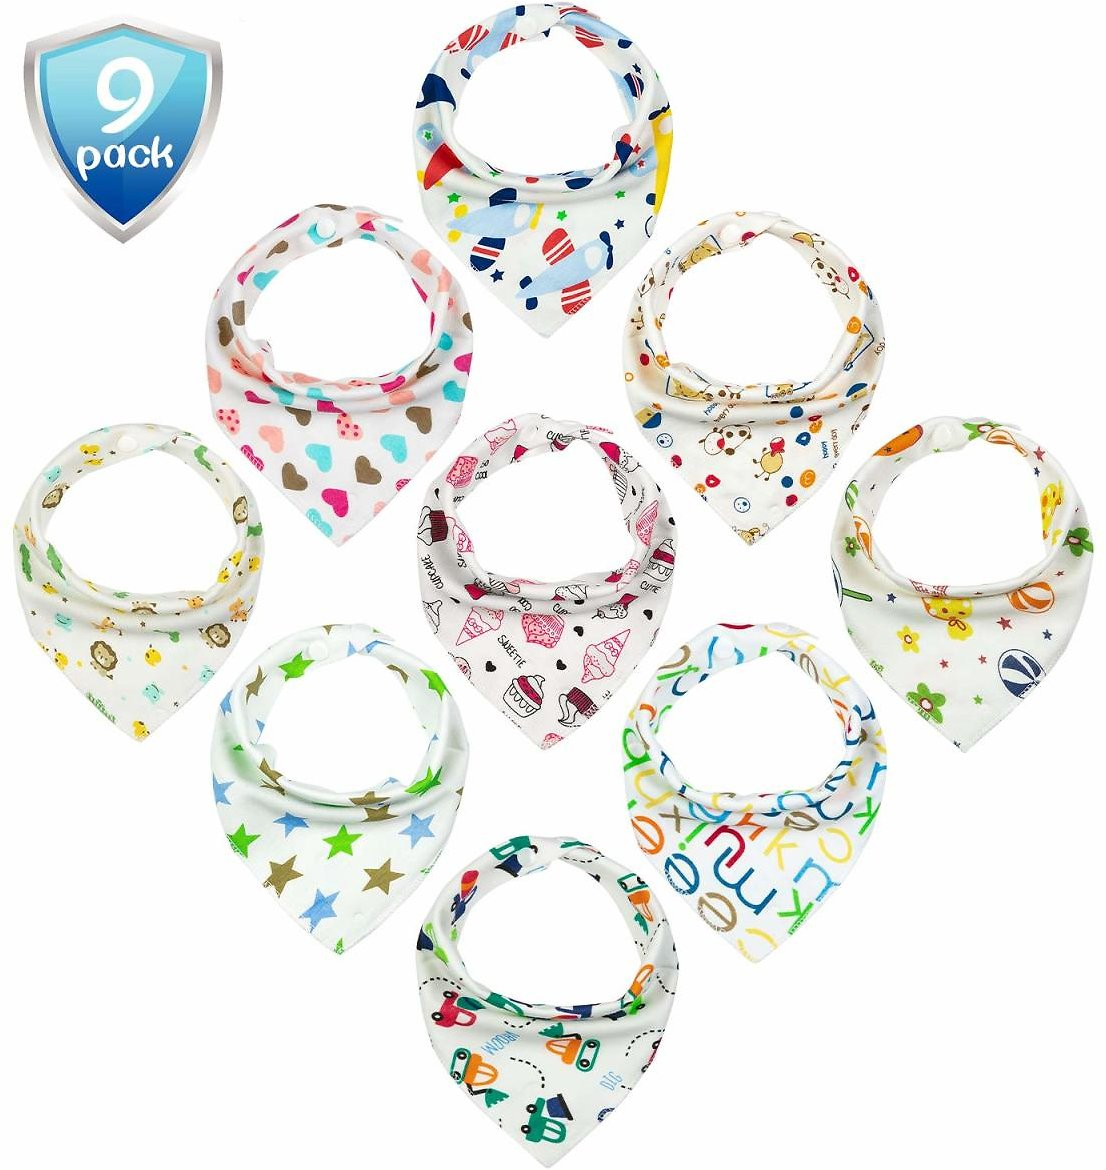 Baby Brooling Bibs Unisex 9-Pack for Teething Drooling Feeding,Soft,Absorbent and Stylish Bandana Bibs As Baby Shower Gifts for